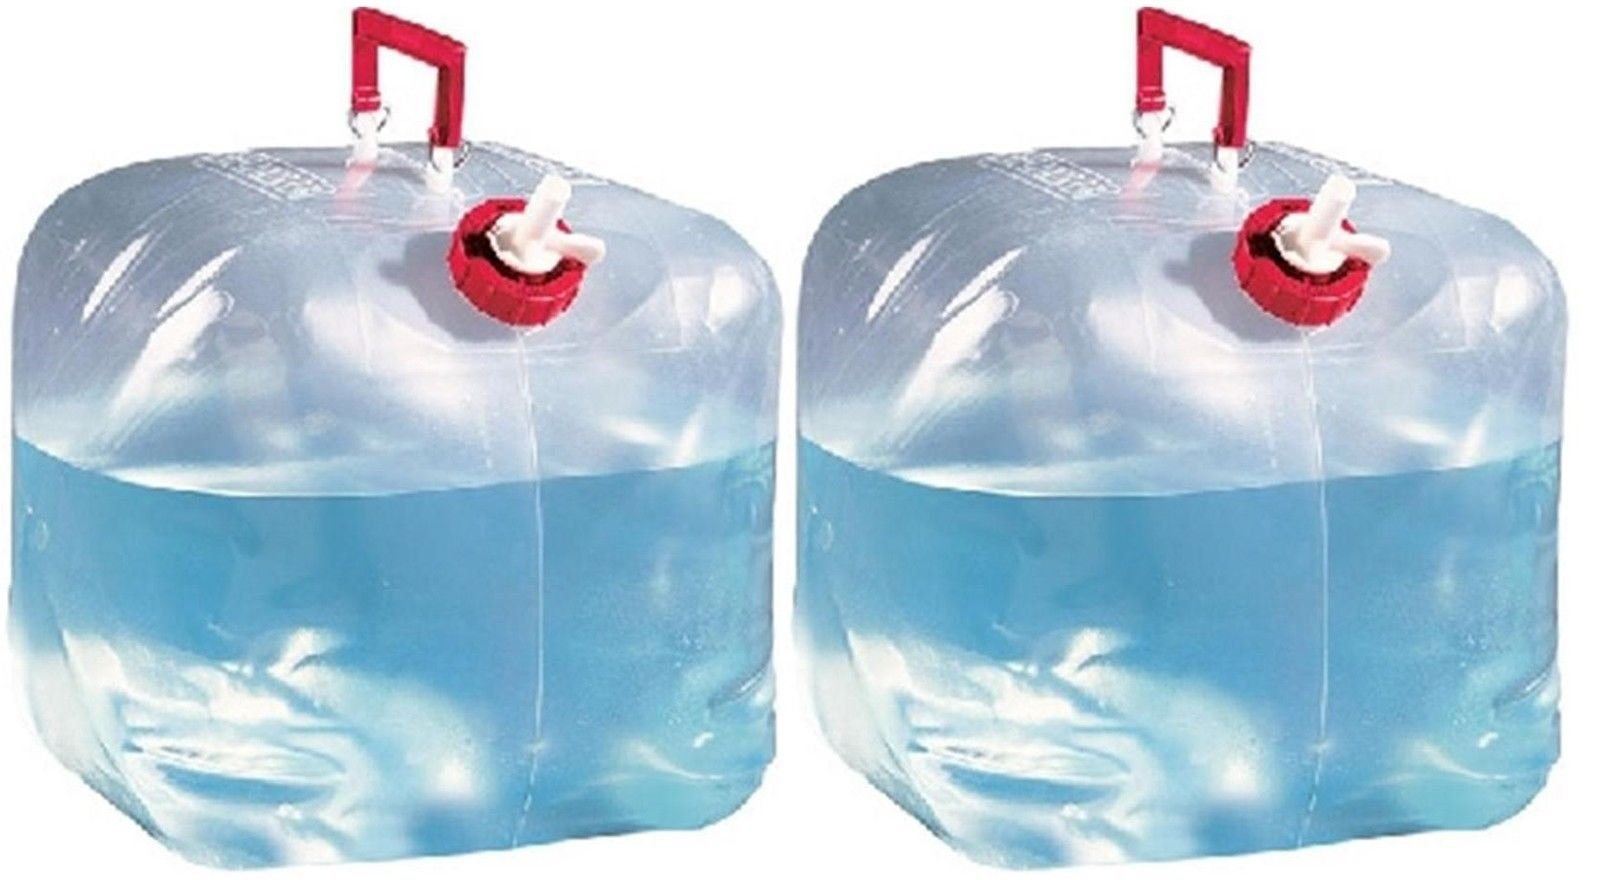 Reliance (2) 5 Gallon Collapsible Water Containers Jugs 5000-13 by Reliance Products